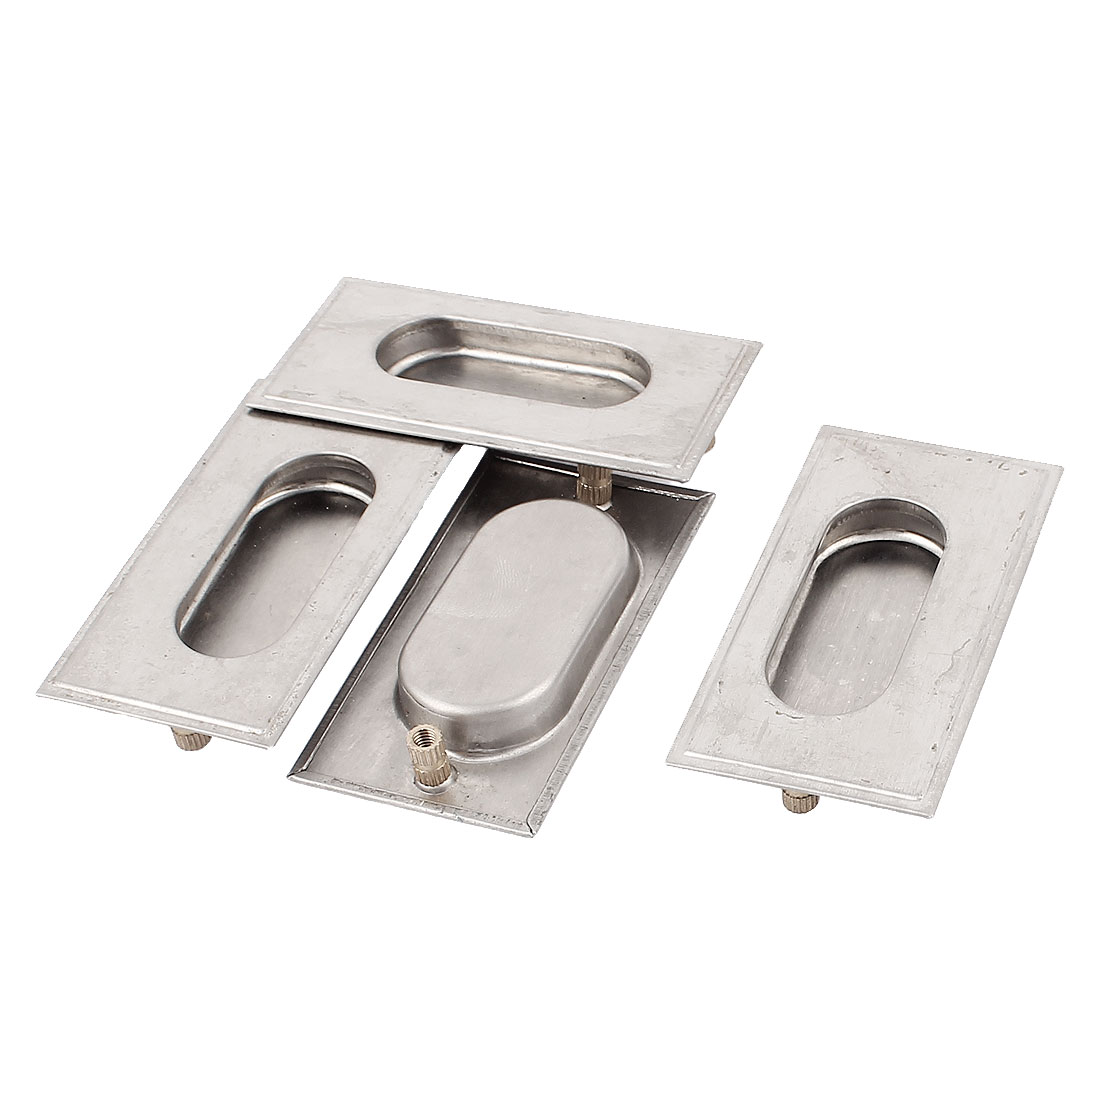 4 Pcs 78mmx41mm Stainless Steel Recessed Flush Pull Sliding Door Handle